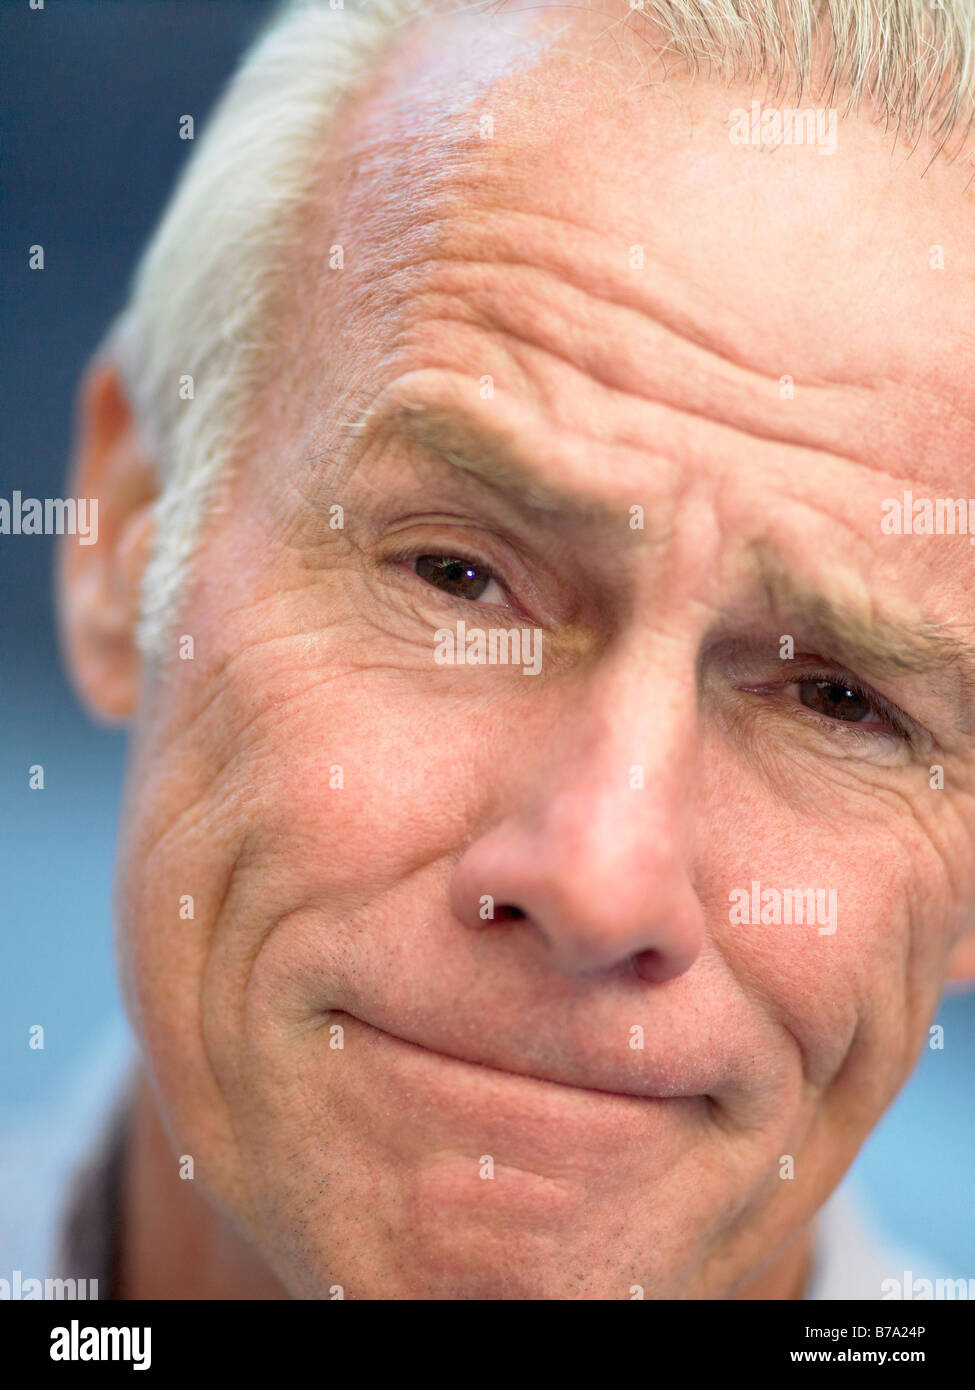 Portrait Of Senior Man Looking At Camera - Stock Image